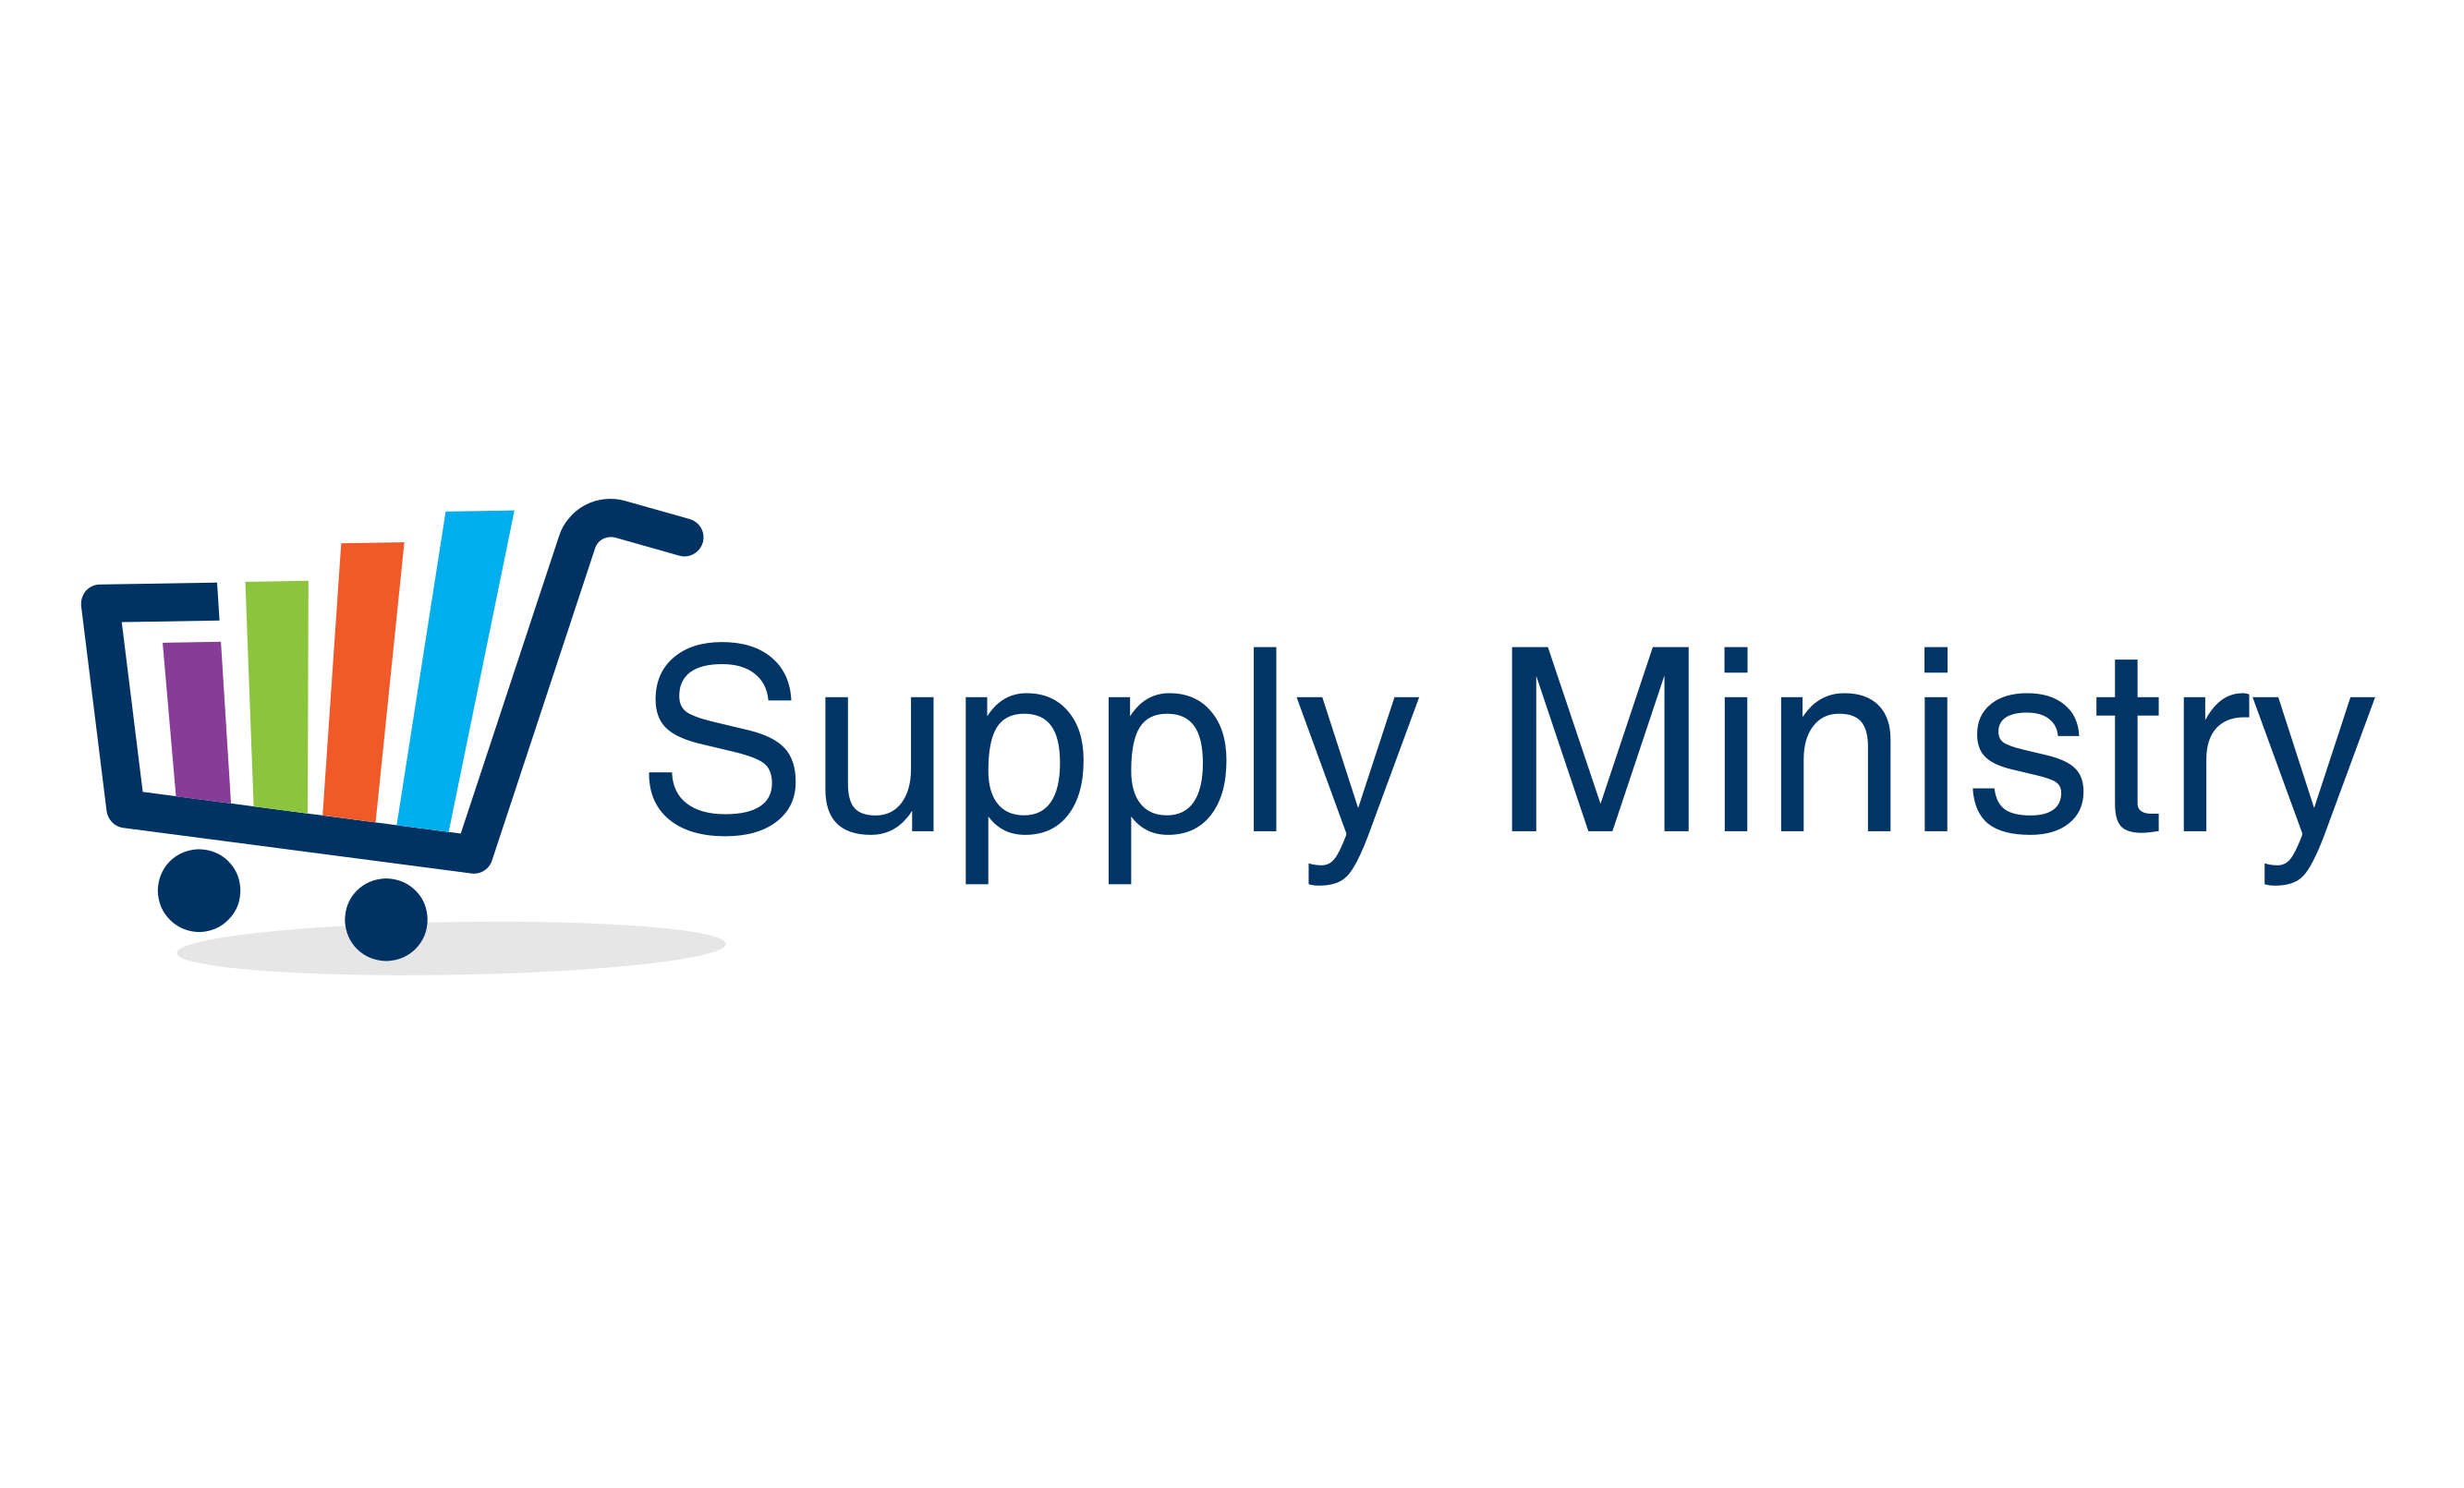 Supply Ministry